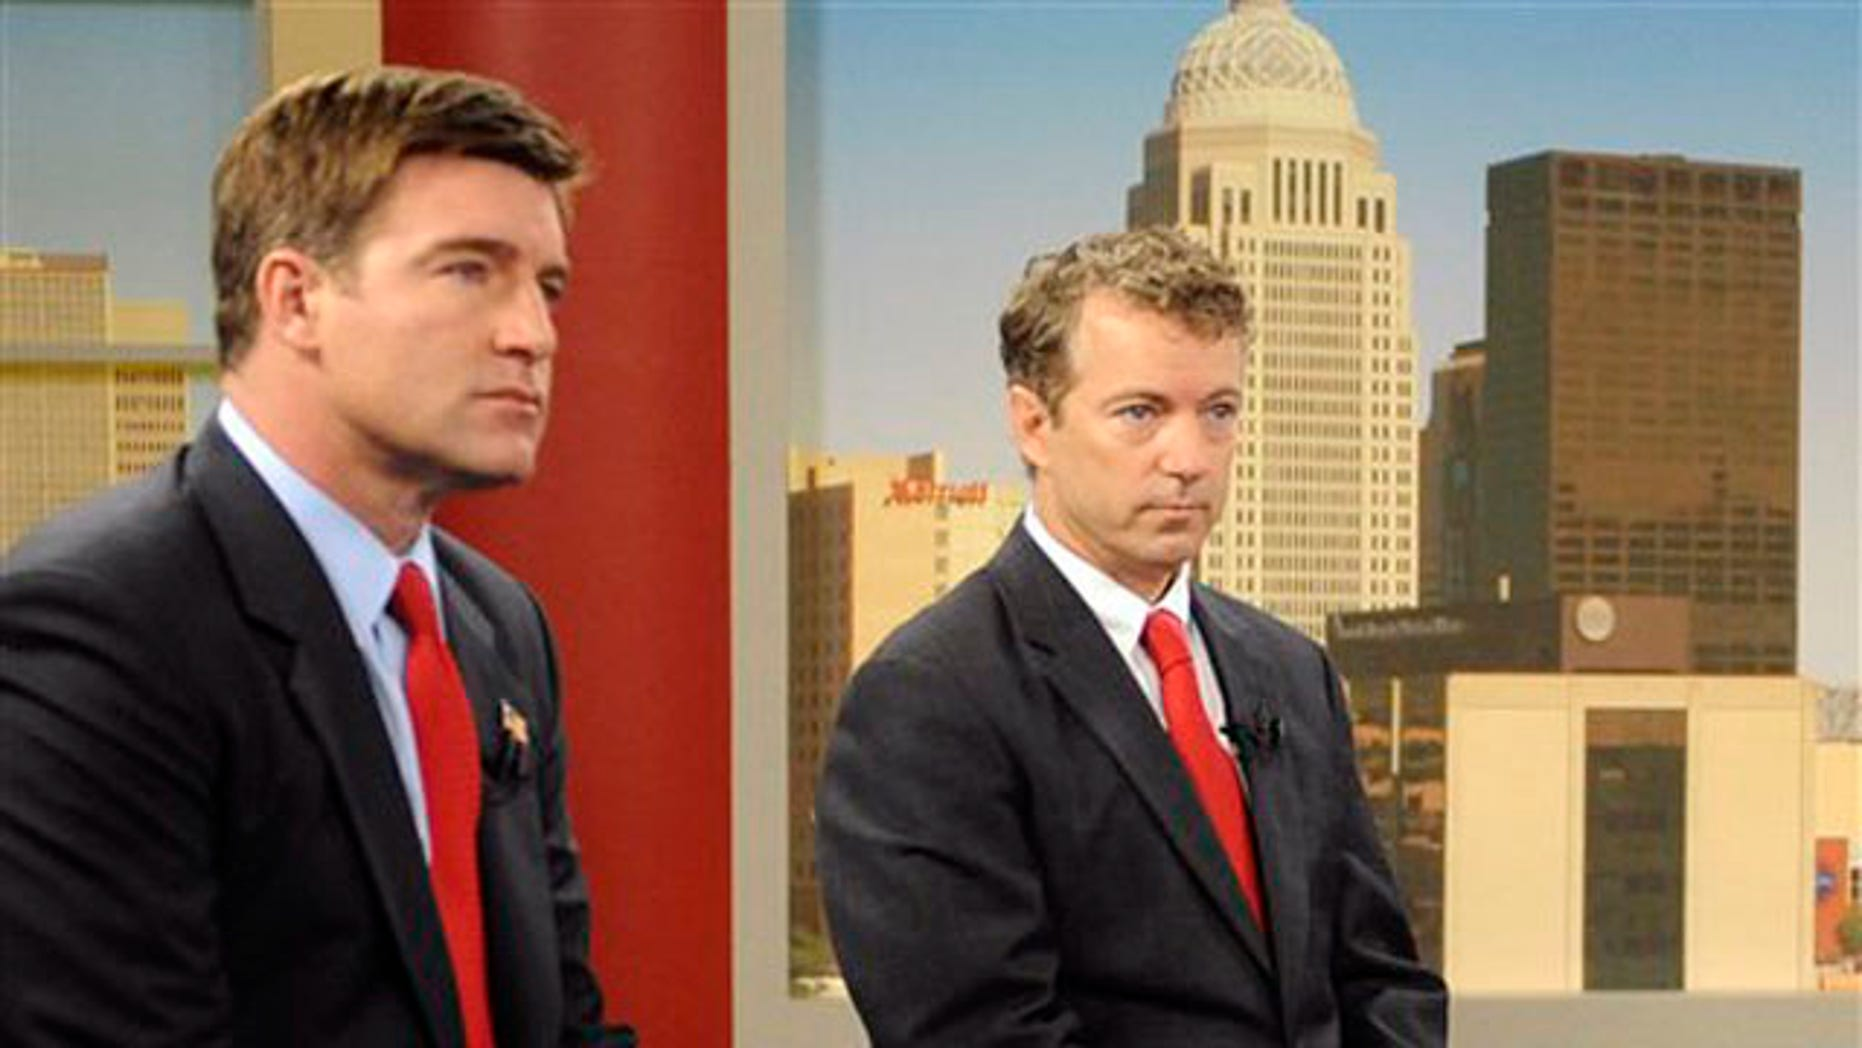 Candidates for Kentucky Senate, Democrat Jack Conway, left, and Republican Rand Paul prepare for a 'Fox News Sunday' debate in Louisville, Ky., Oct. 3. (AP Photo)